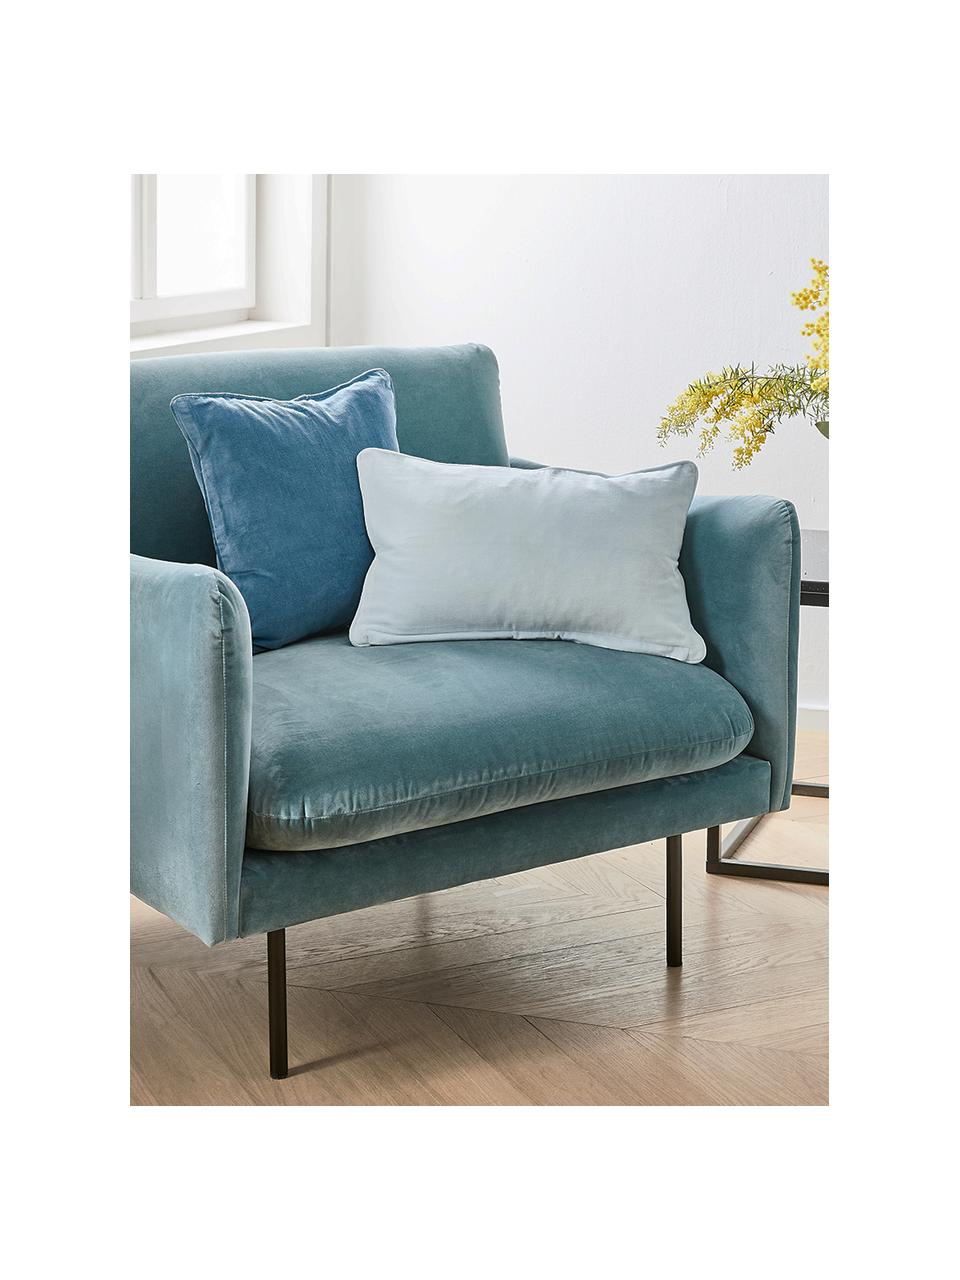 Fauteuil moderne velours turquoise Moby, Velours turquoise